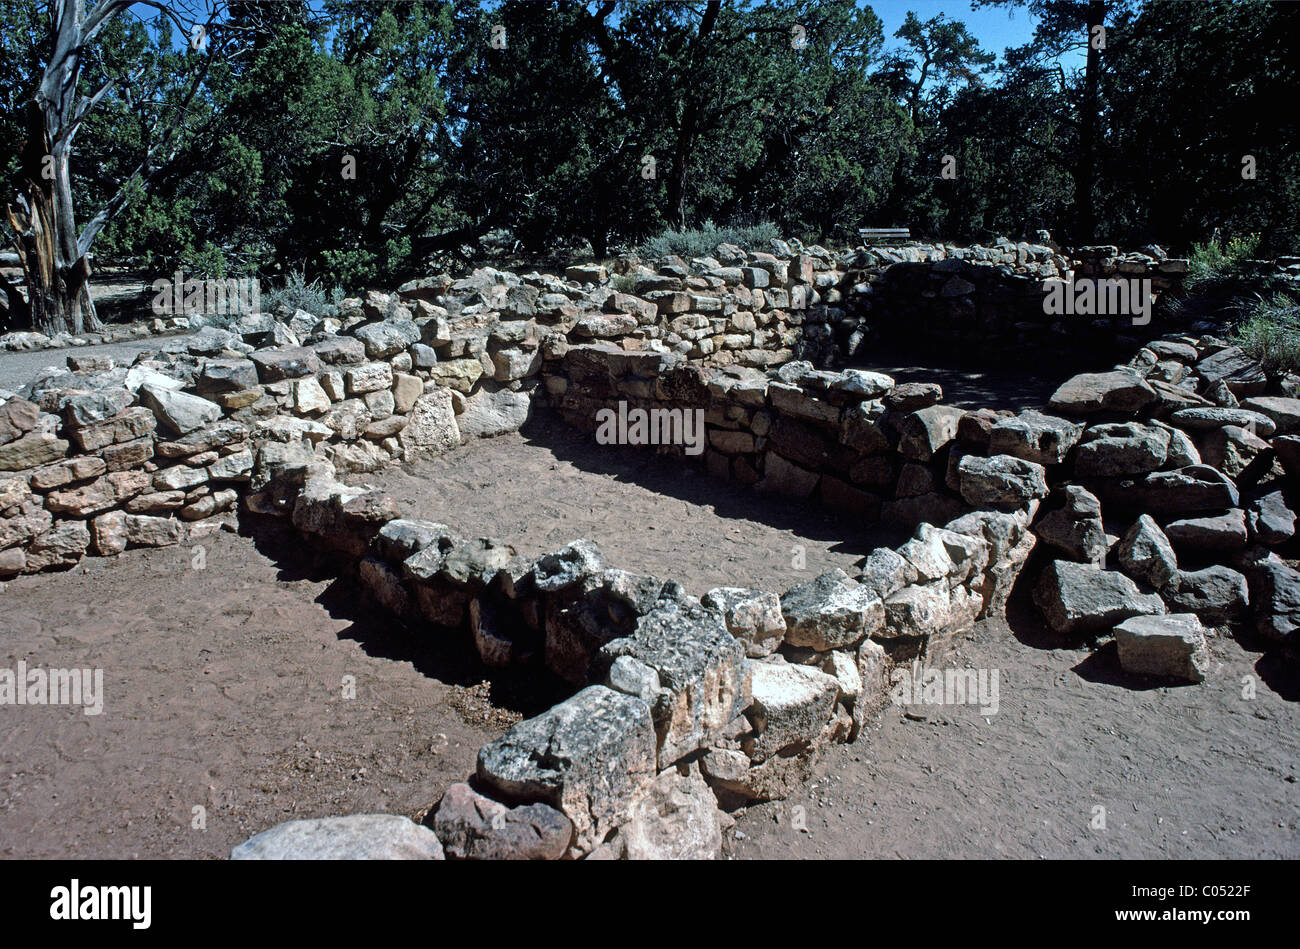 Anasazi Indian Tusayan ruins along East rim drive, South Rim, Grand Canyon National Park, Arizona, USA - Stock Image